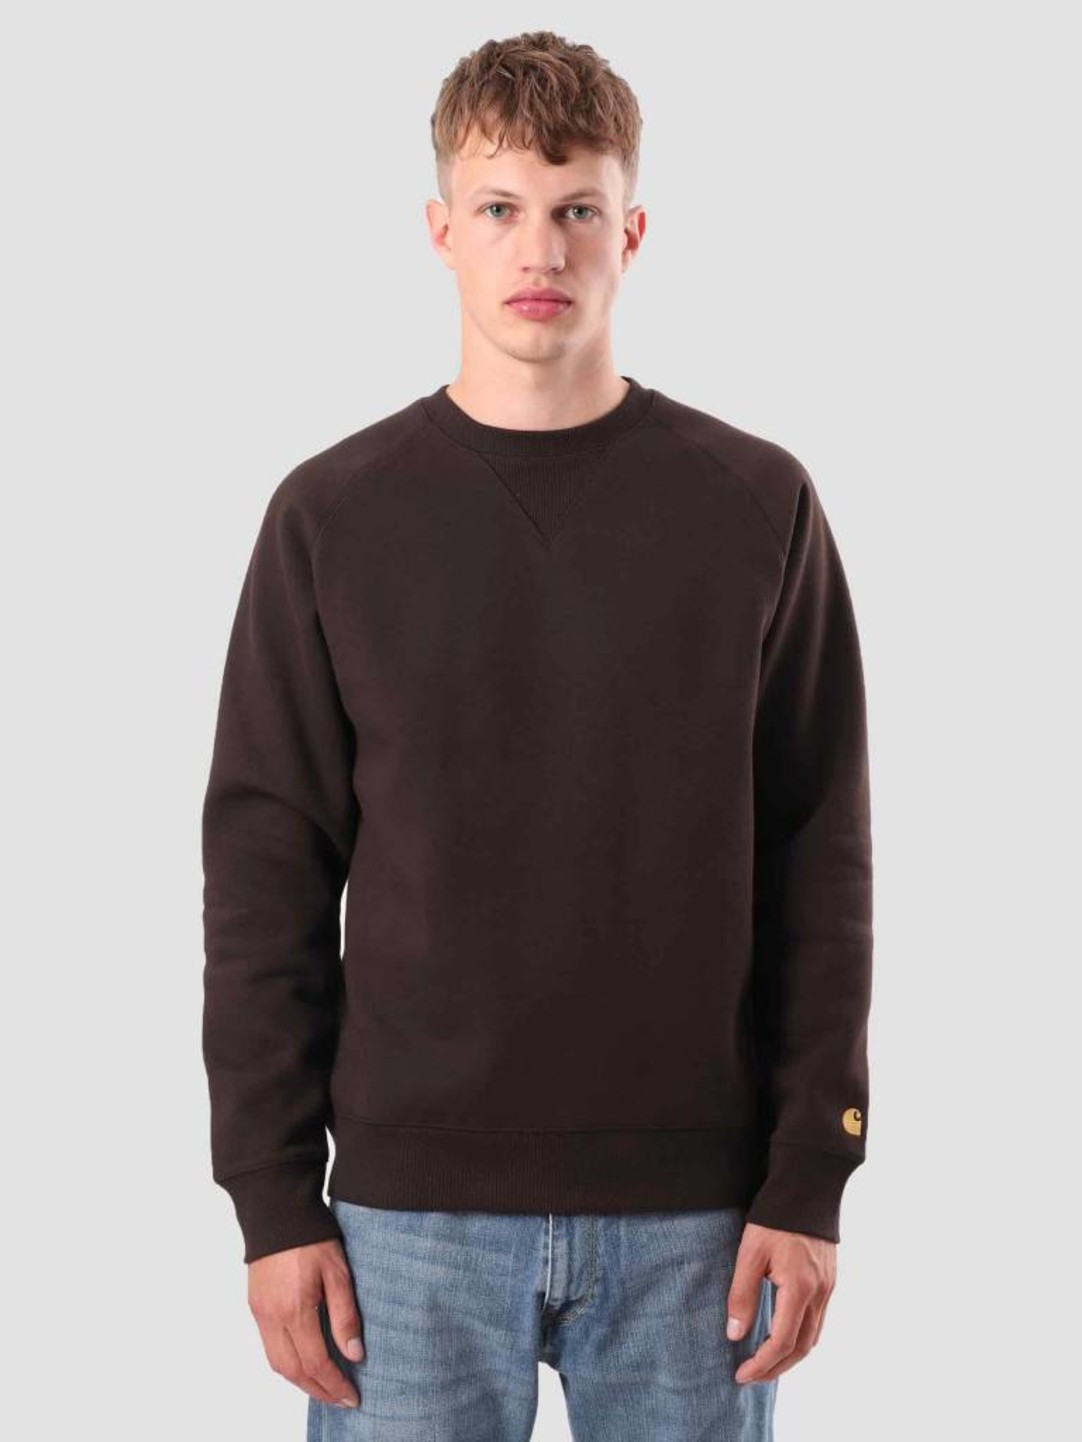 promo codes low price sale amazing selection Carhartt WIP Chase Sweat Tobacco Gold I026383-4790